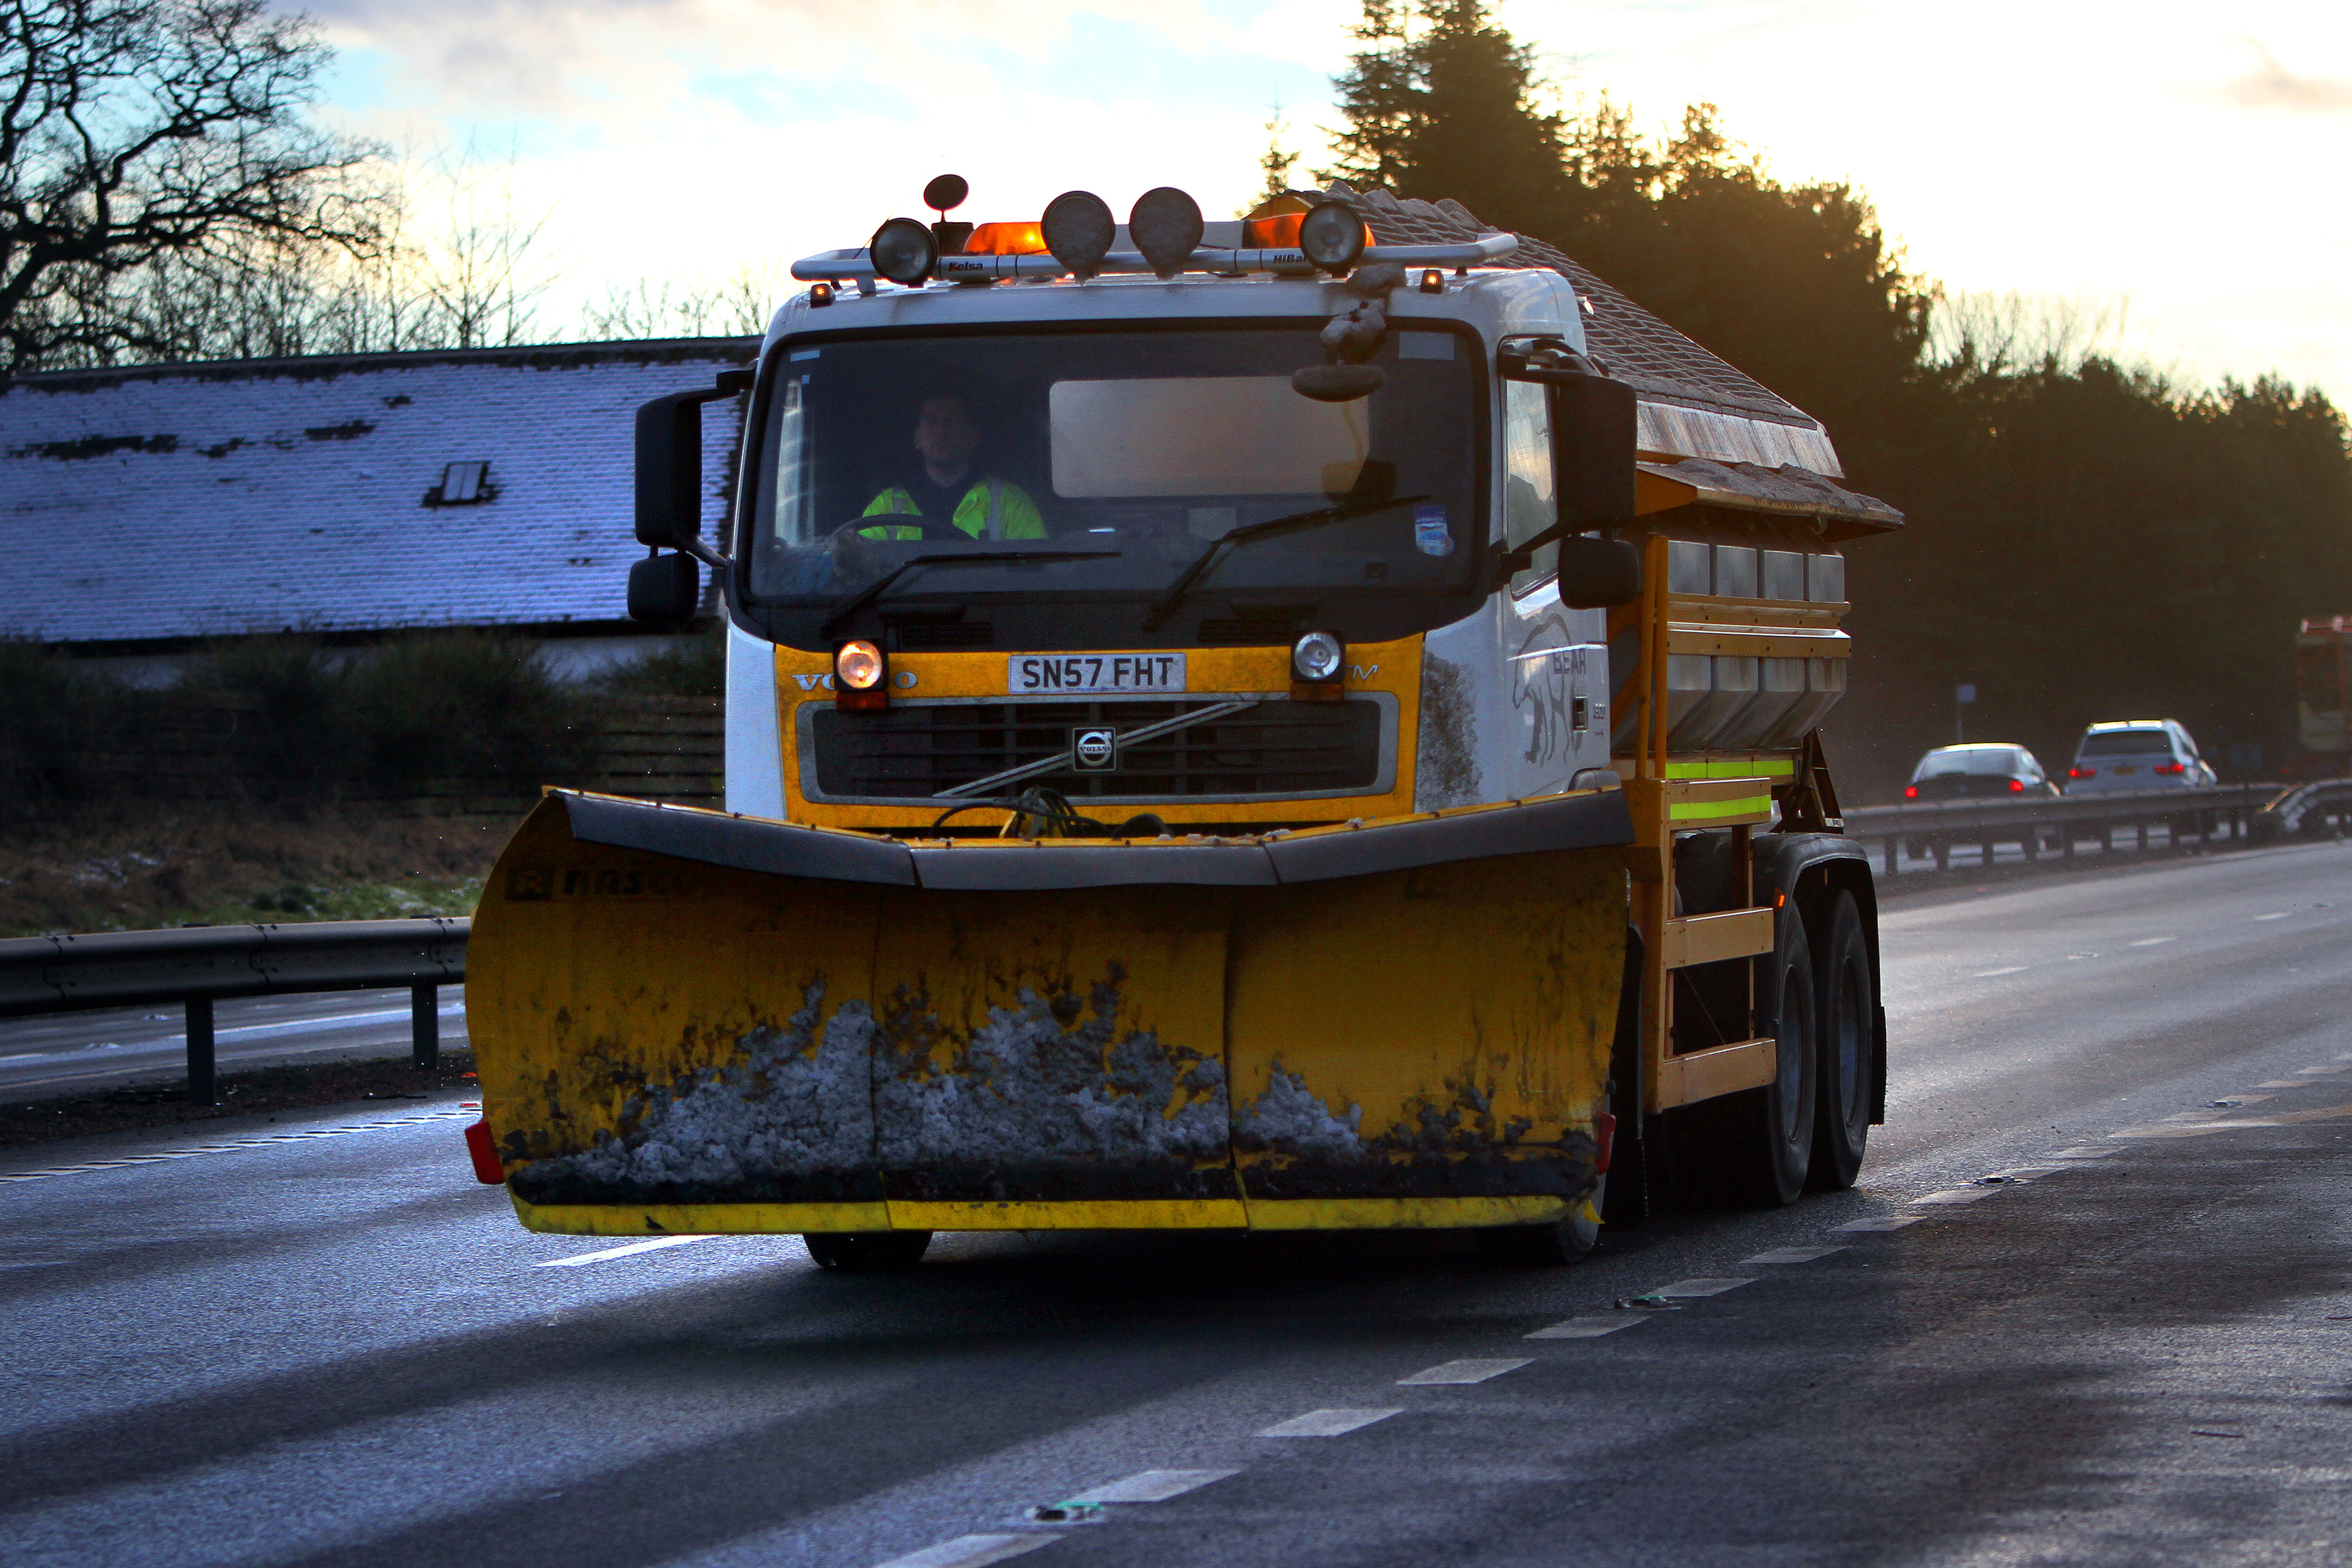 Perth and Kinross Council aims to keep roads moving this winter.